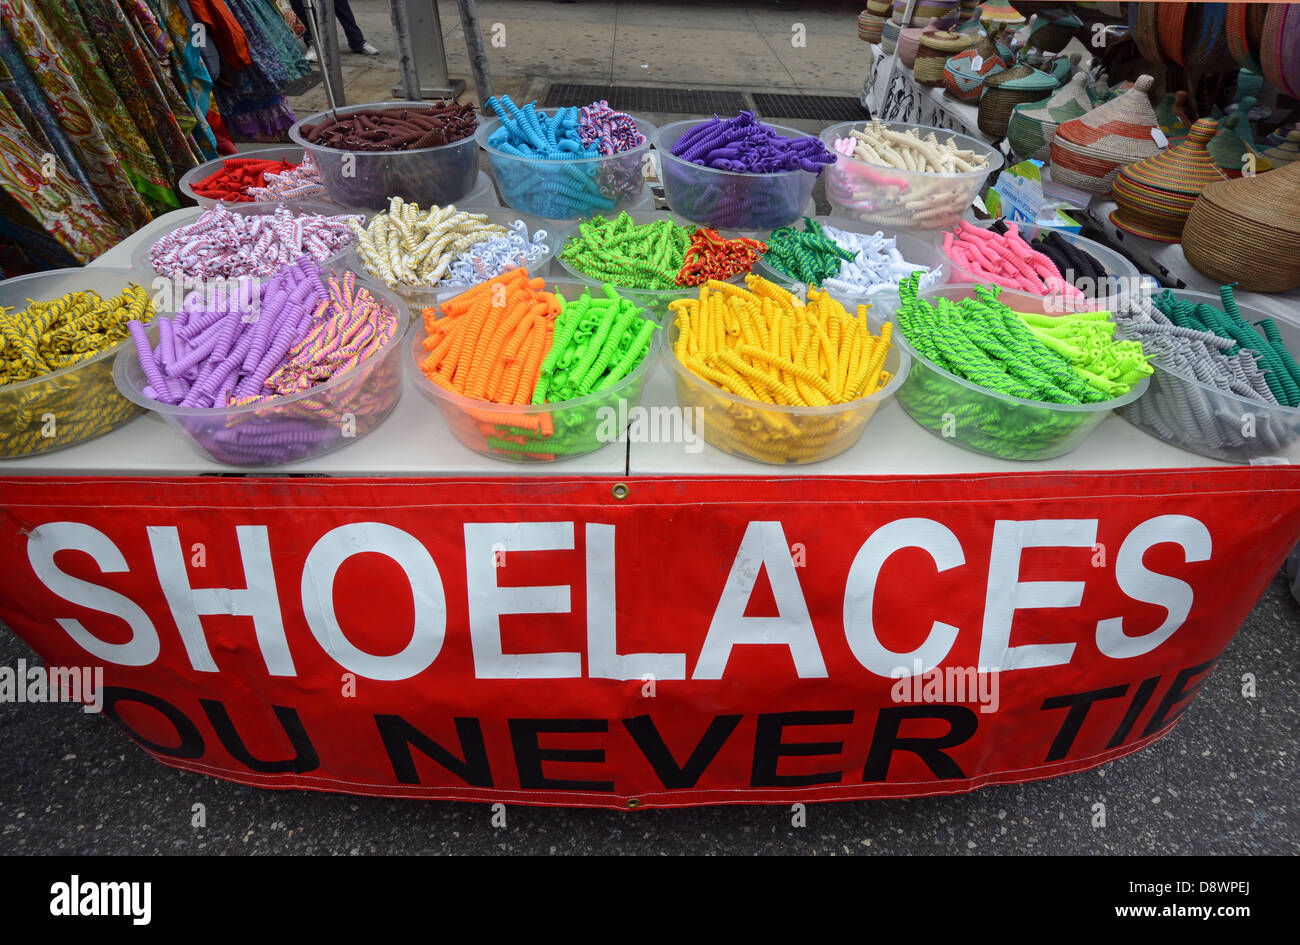 Shoelaces that don't need to be tied on sale at a street fair in Greenwich Village, New York City. Stock Photo